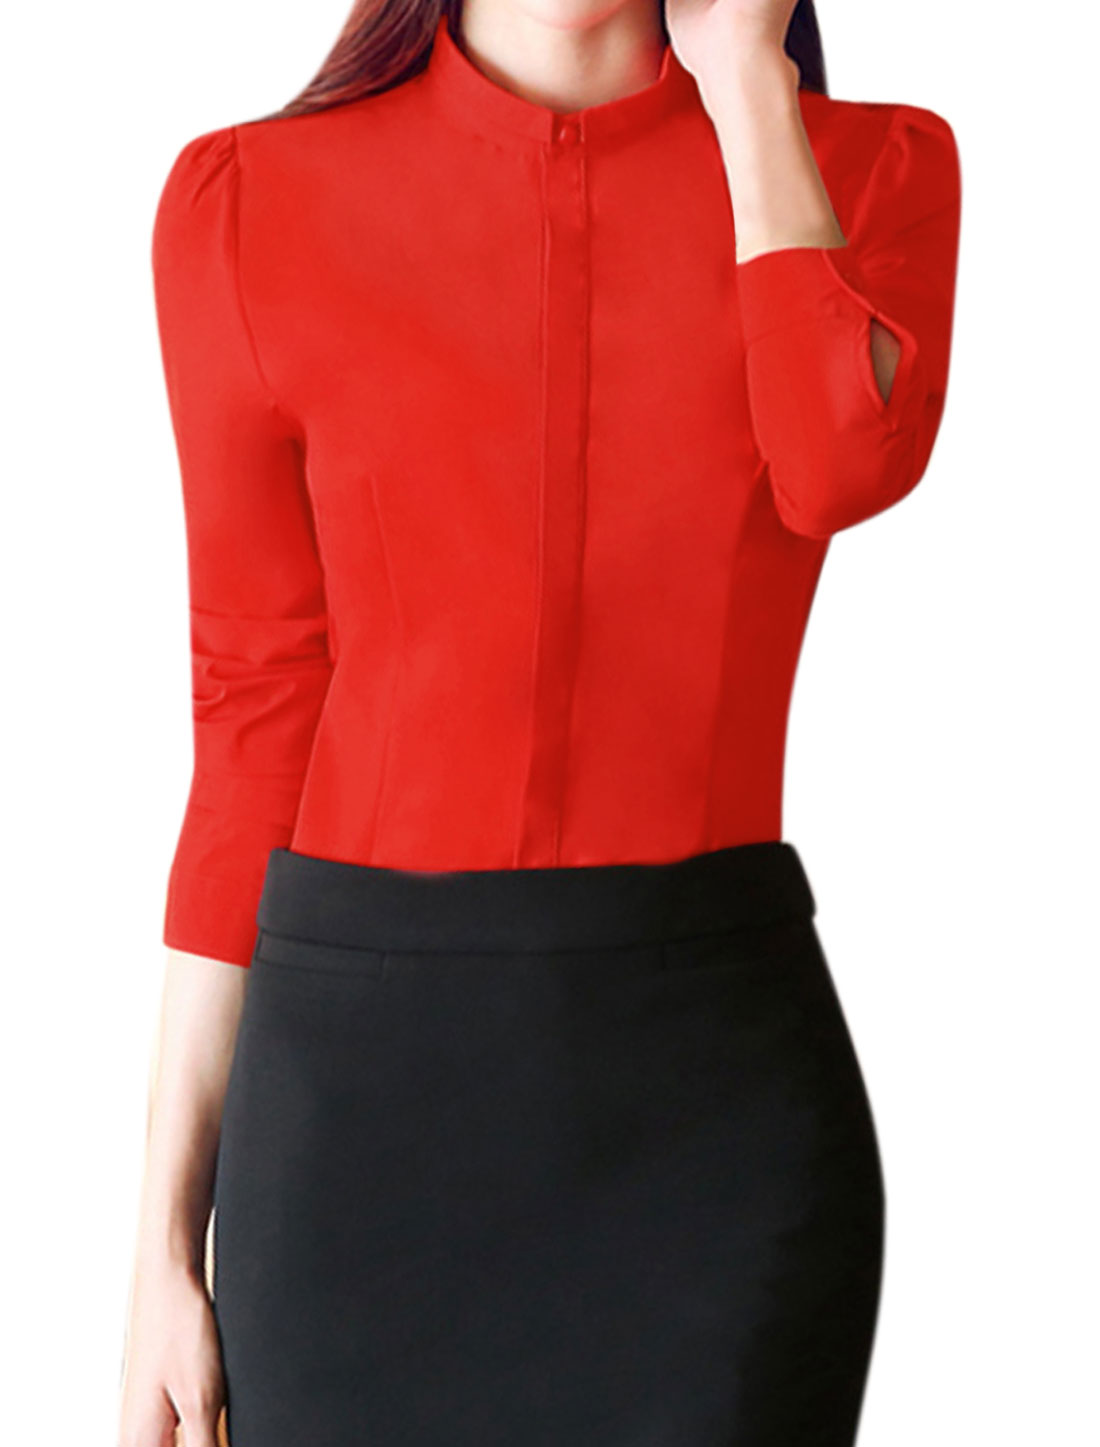 Women Turn Down Collar Single Breasted Slim Fit Shirt Red L